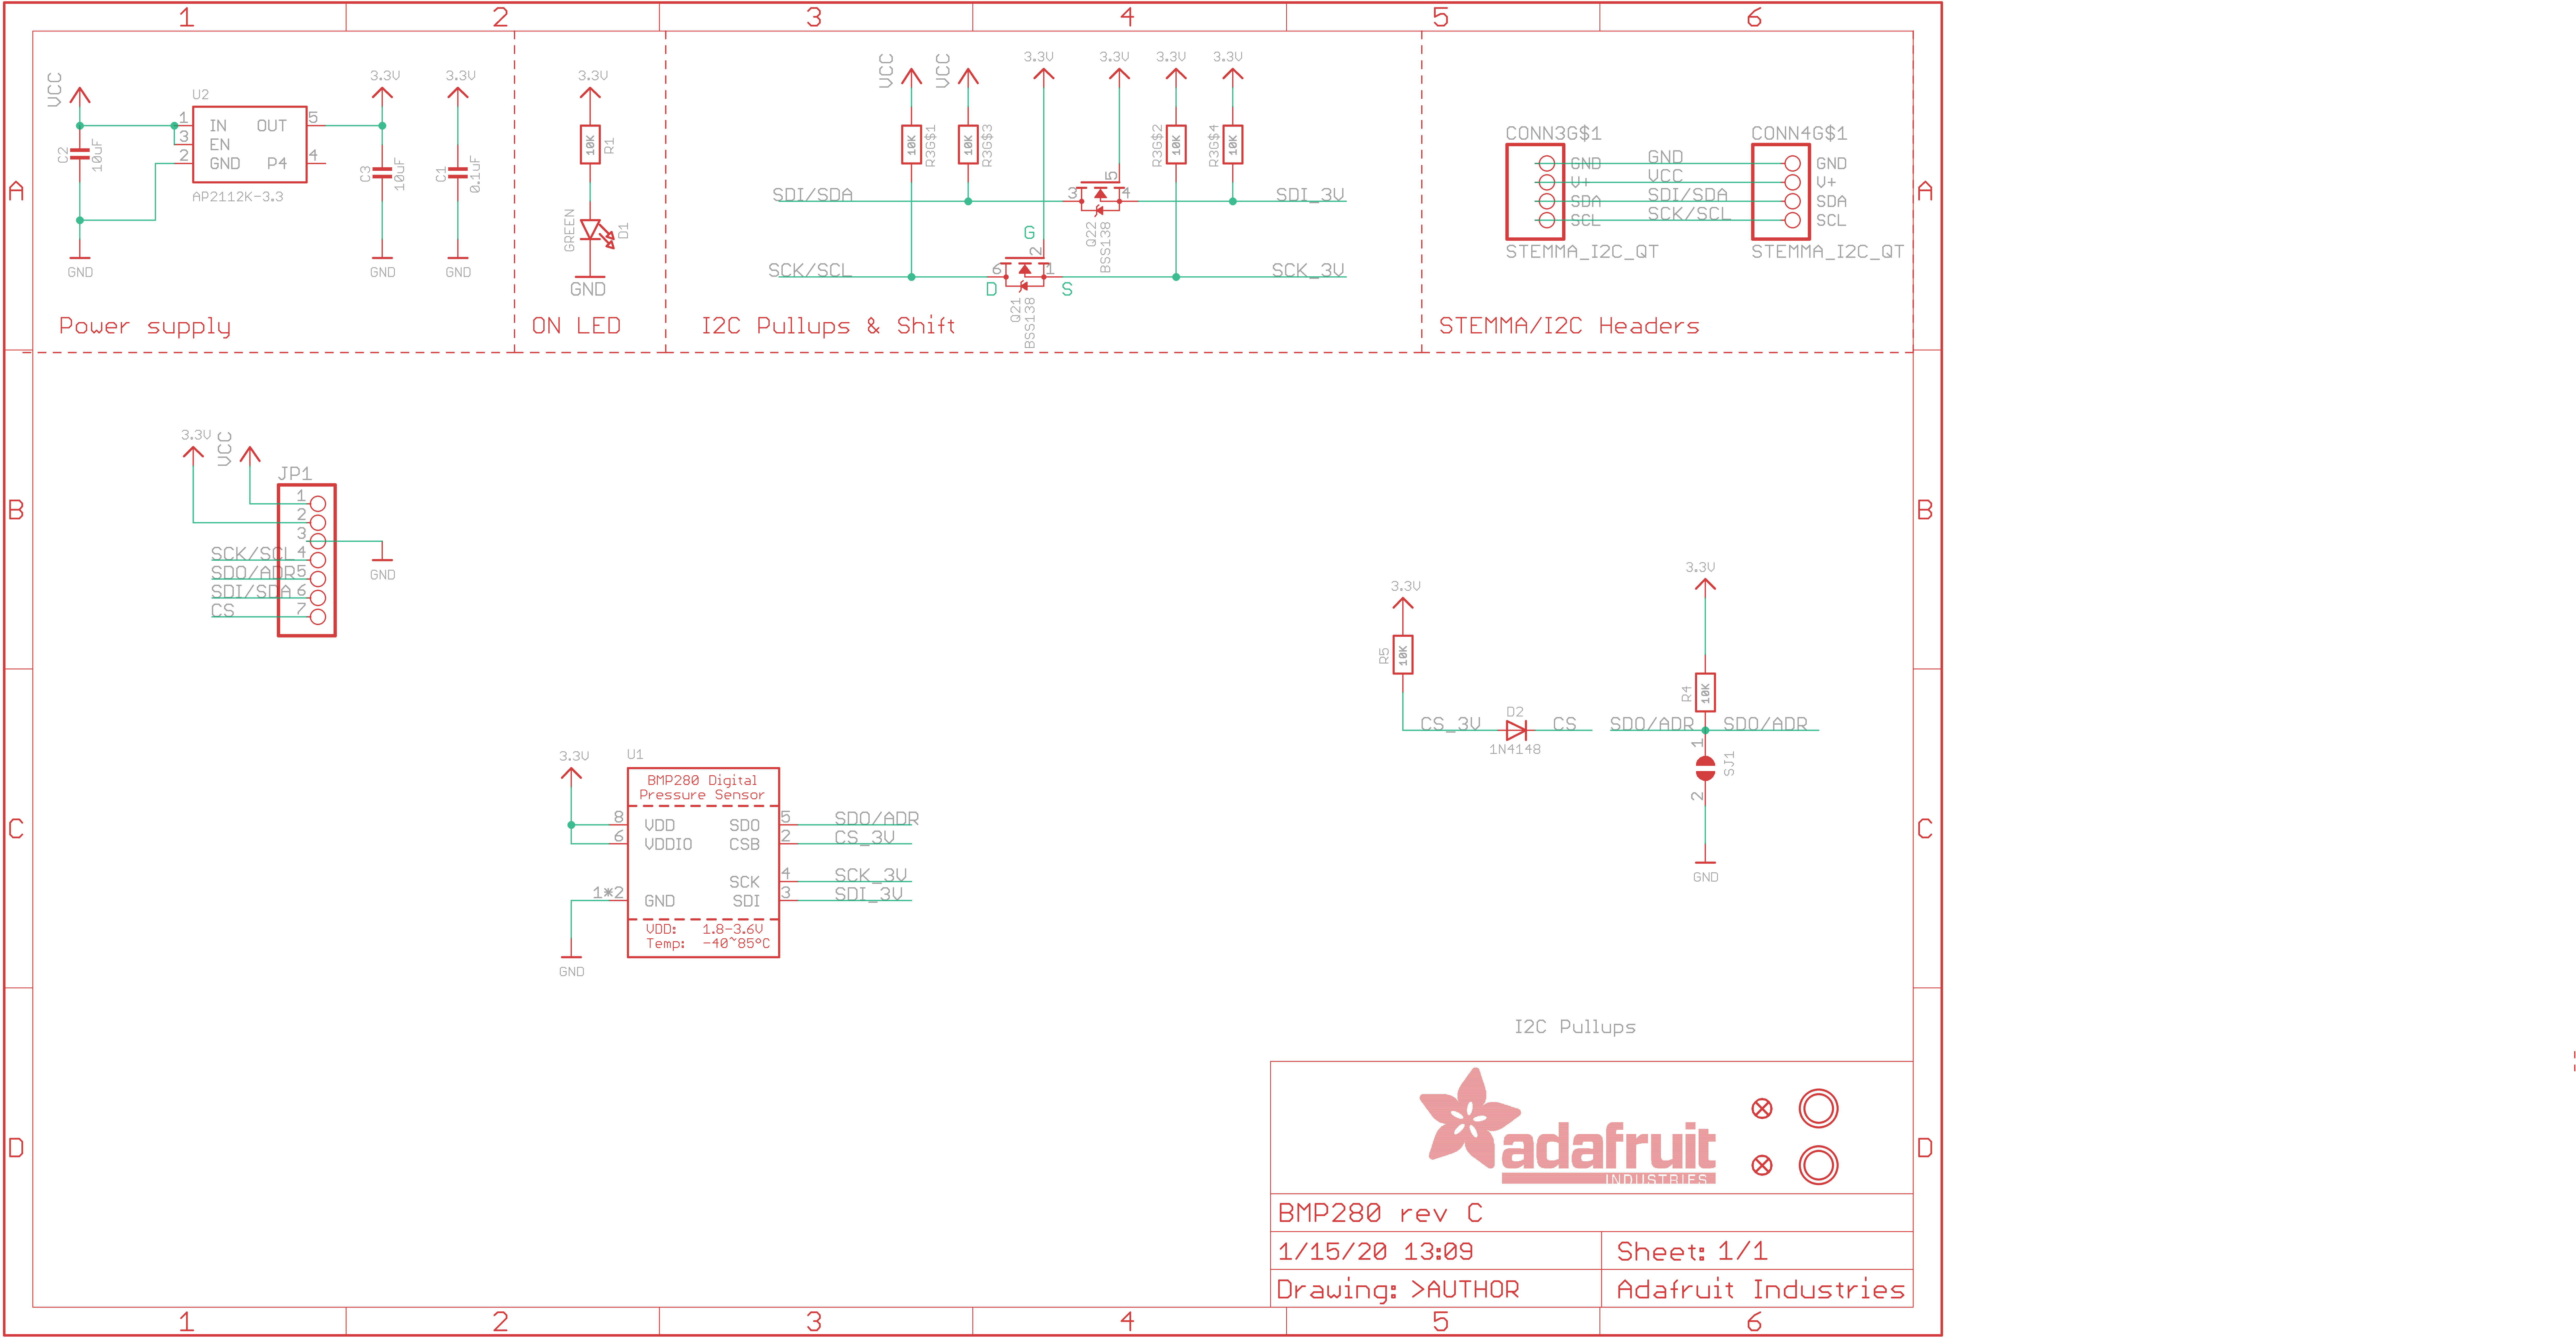 adafruit_products_BMP280_sch.png